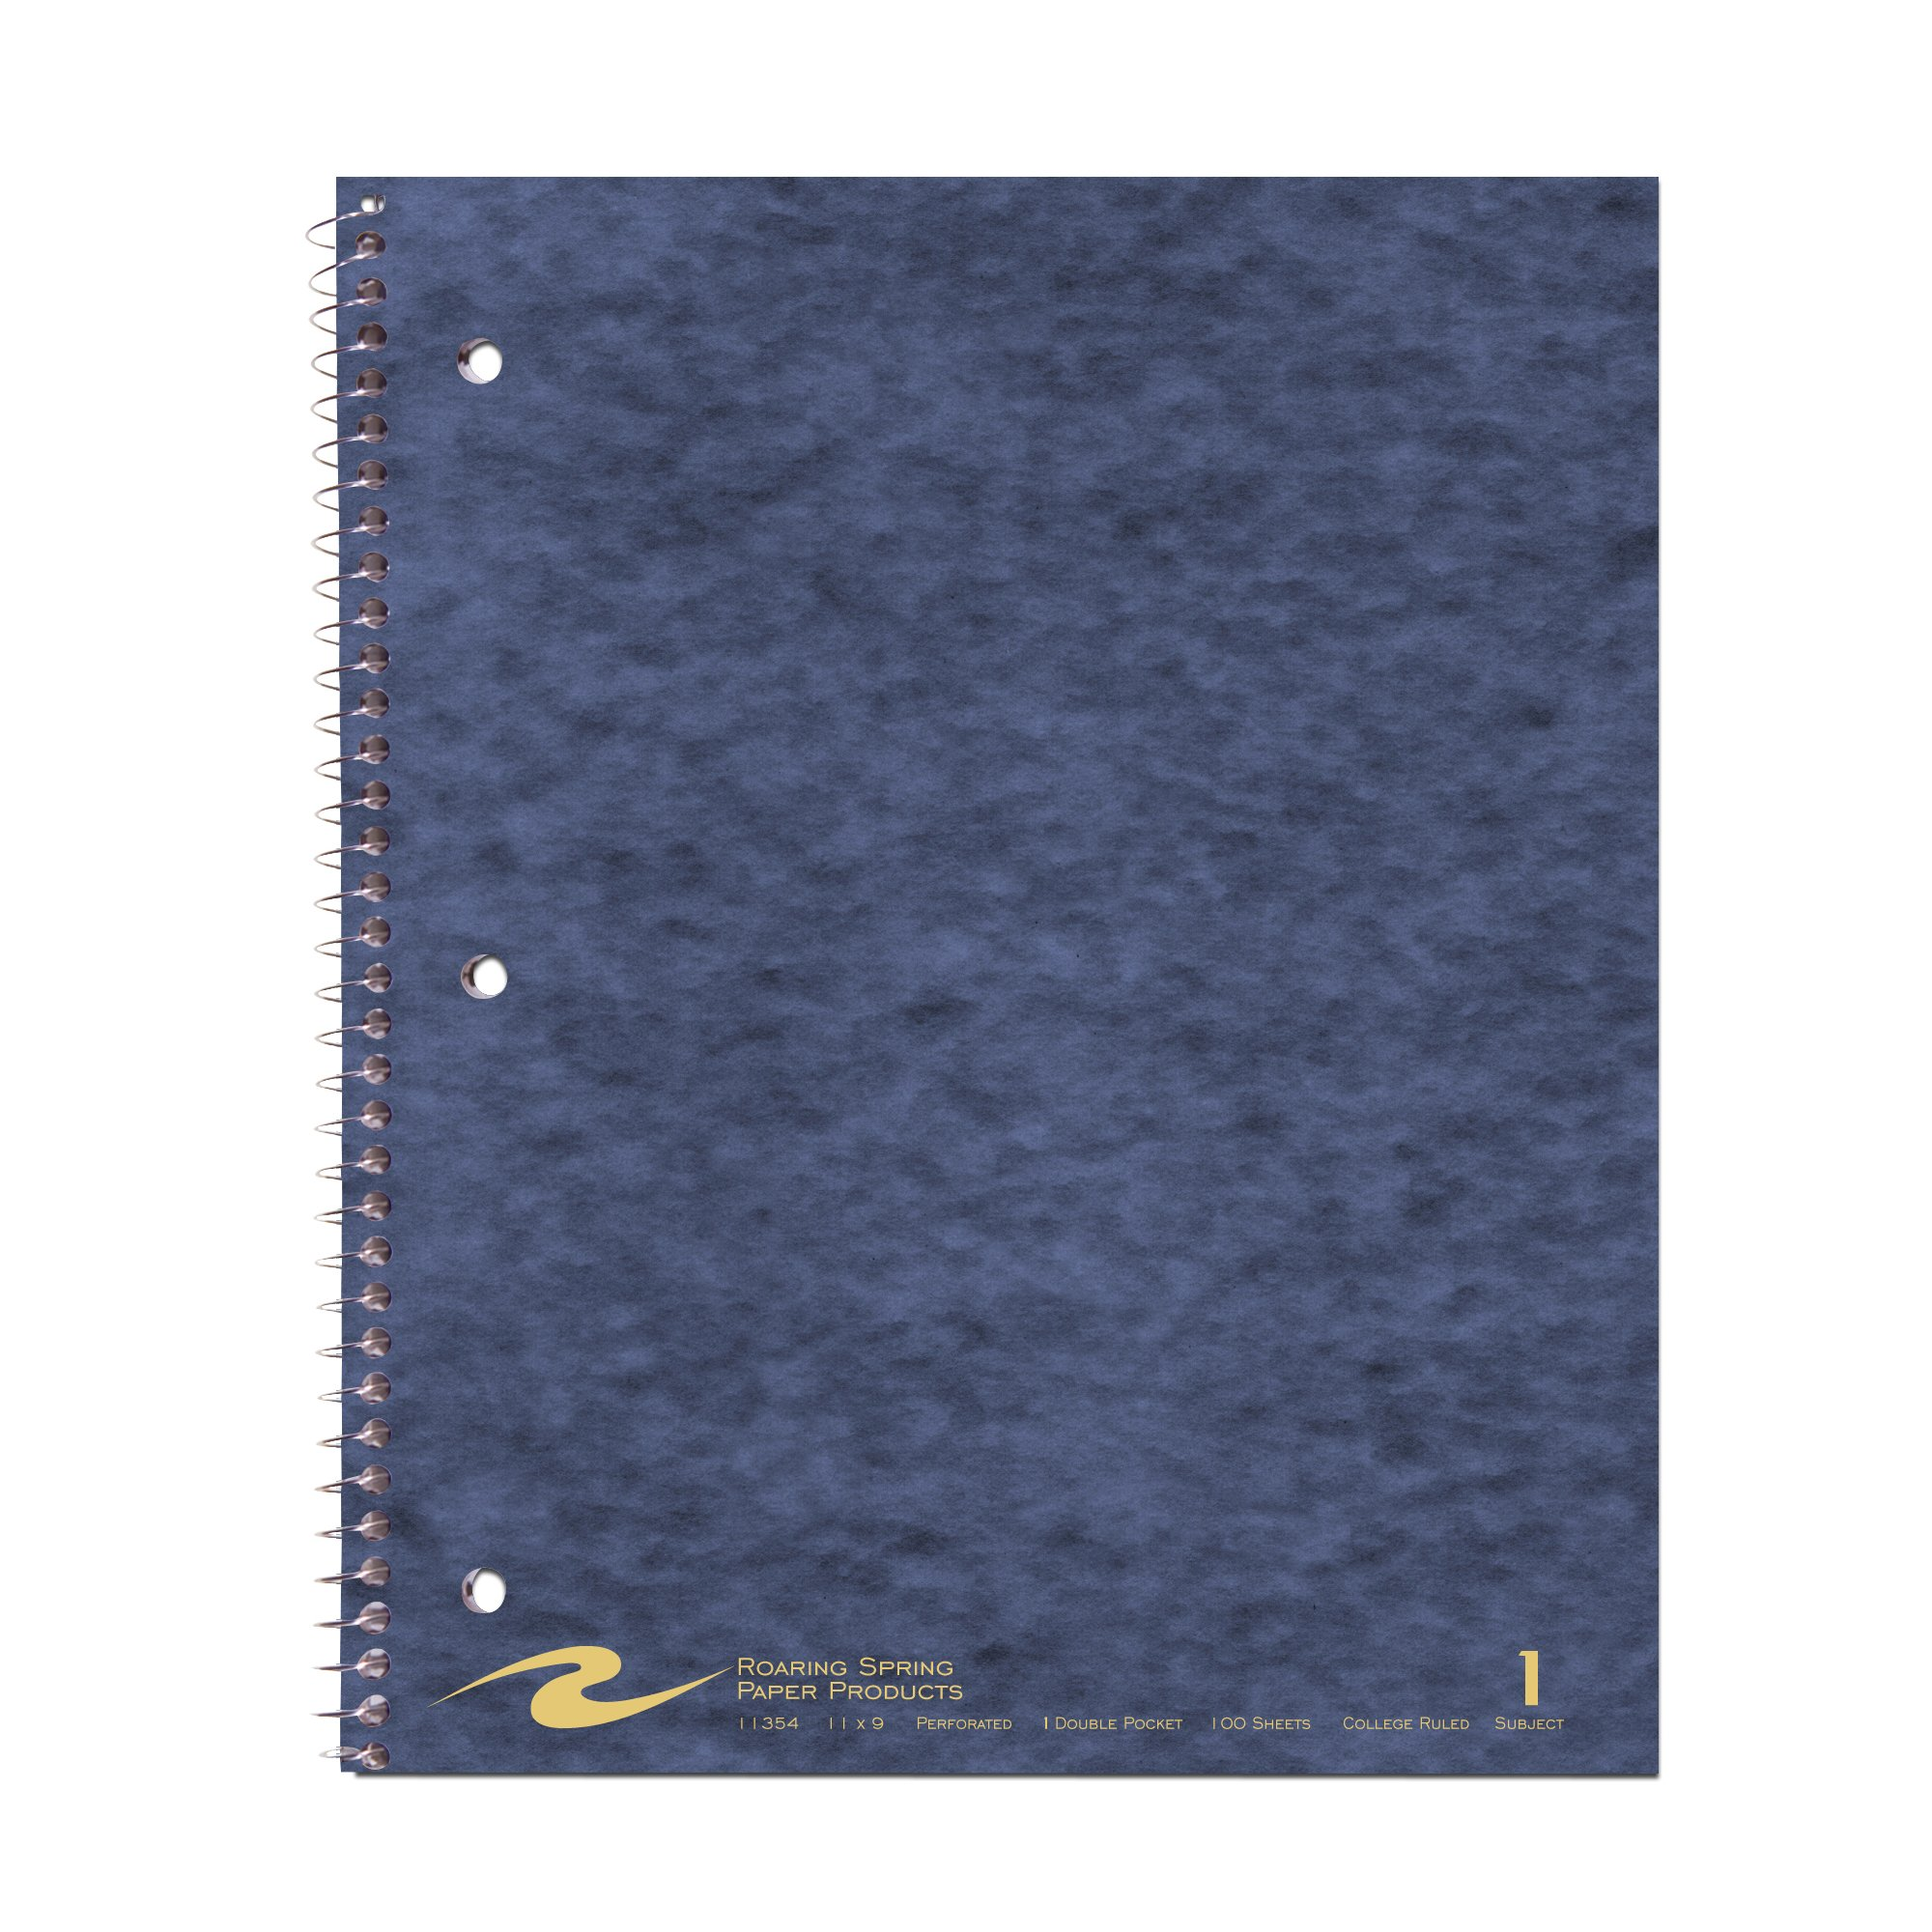 Roaring Spring Wirebook Notebook, One Subject with 1 Double Pocket, 11'' x 9'', 100 sheets, College Ruled, Assorted Color Covers